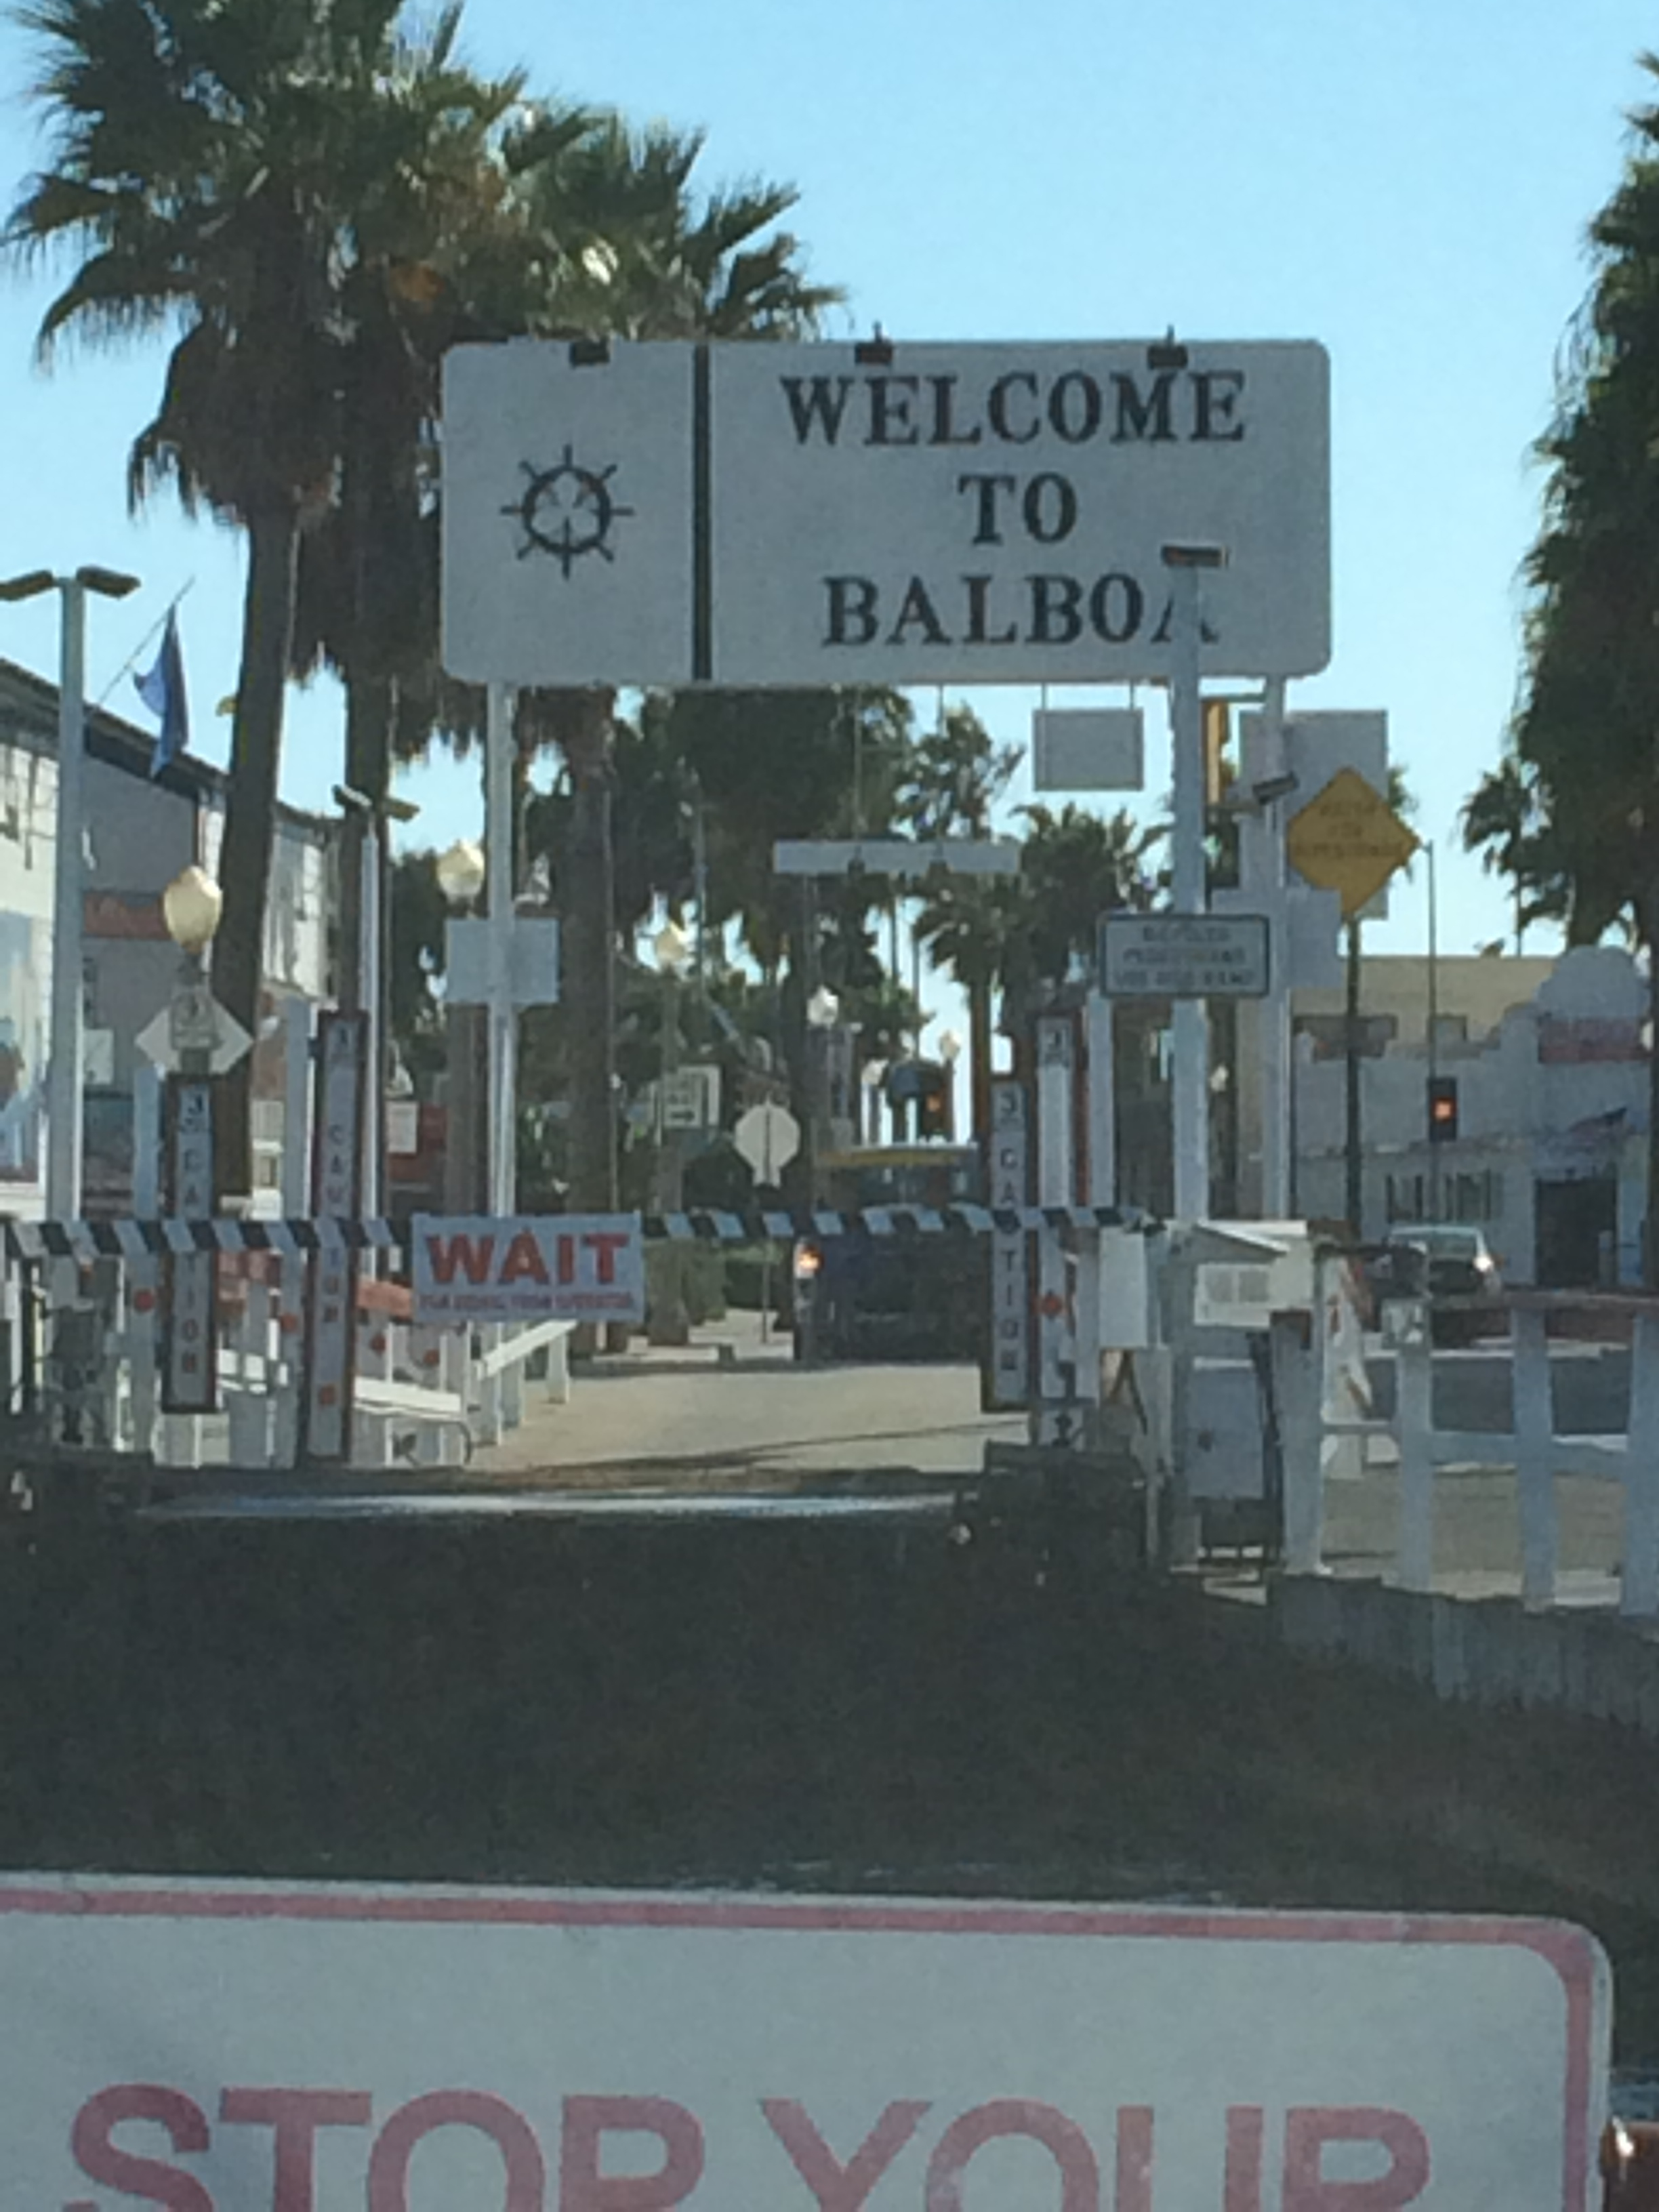 Taking a ride on the historic Balboa Ferry